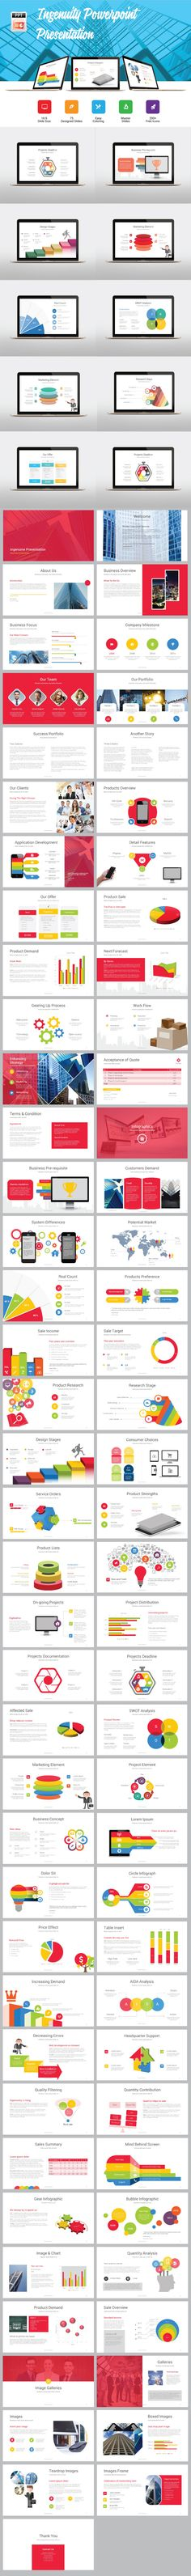 Ingenuity Business Presentation  Powerpoint Template • Download ➝ https://graphicriver.net/item/ingenuity-business-presentation/12380875?ref=pxcr